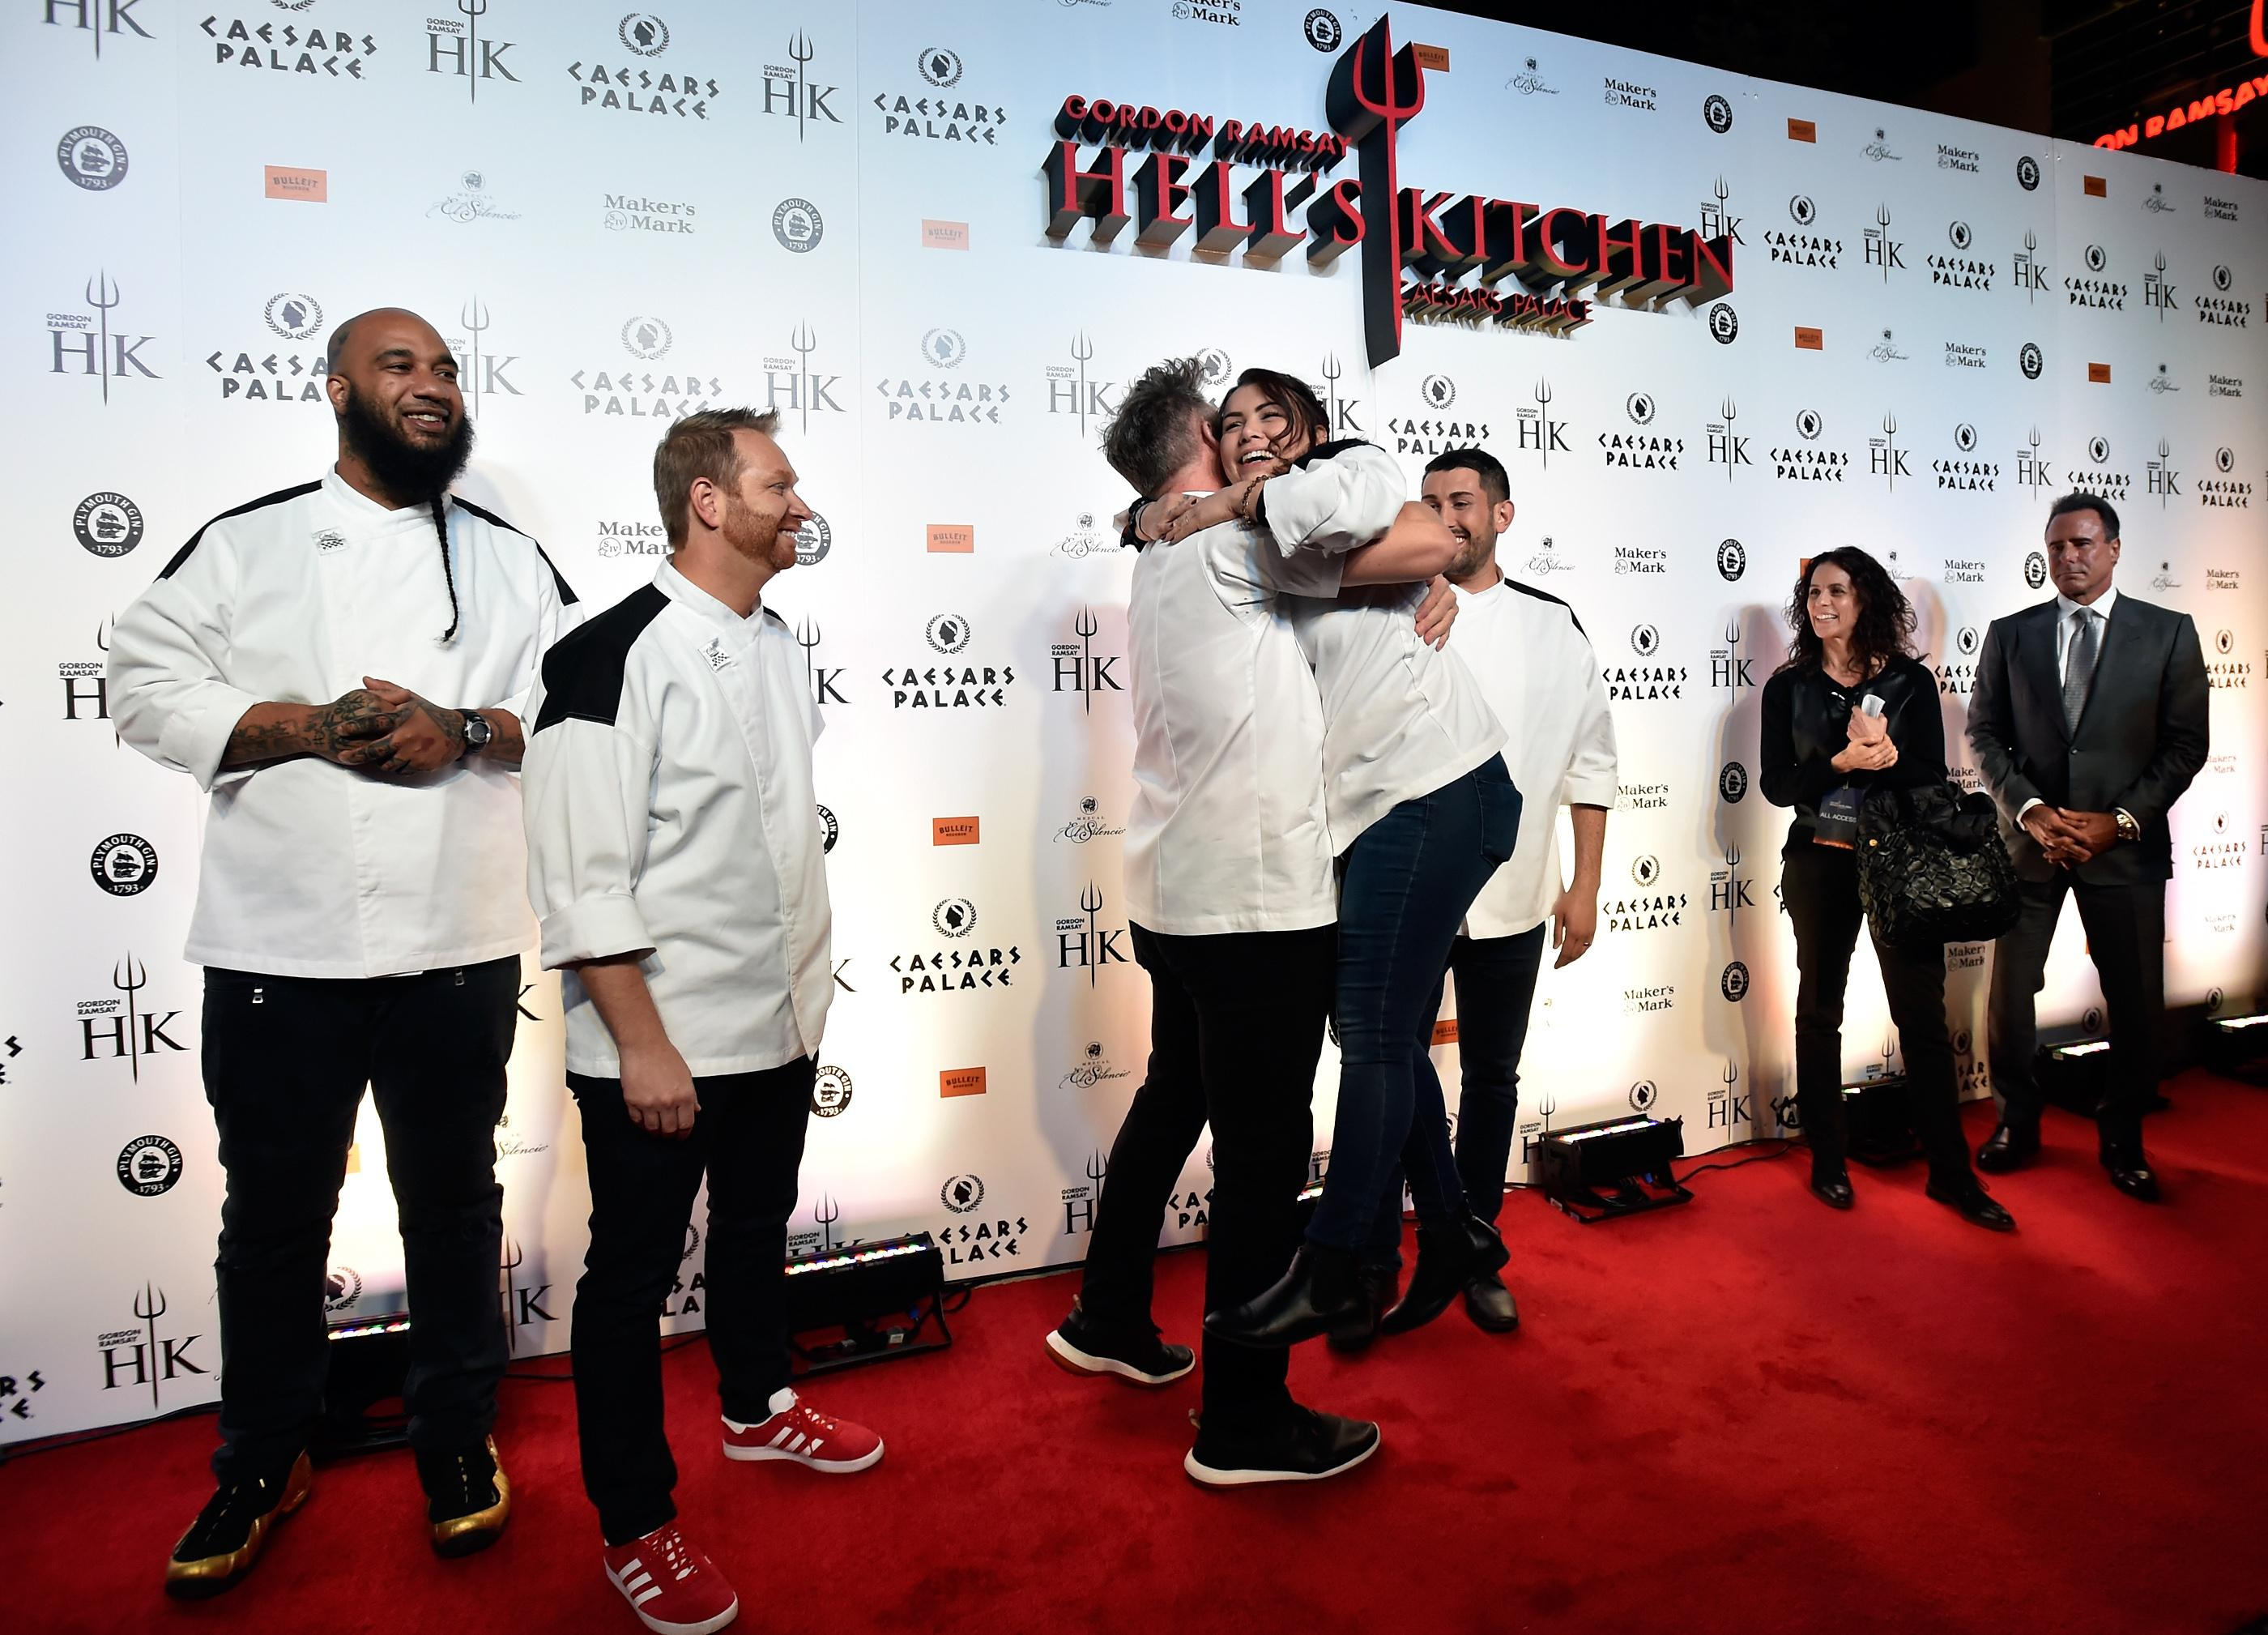 Chef Gordon Ramsay, 3rd left, greets Hell's Kitchen season 17 finalist Michelle Tribble during the grand opening red carpet of Gordon Ramsay Hell's Kitchen at Caesars Palace Friday, Jan. 26, 2018, in Las Vegas. CREDIT: David Becker/Las Vegas News Bureau